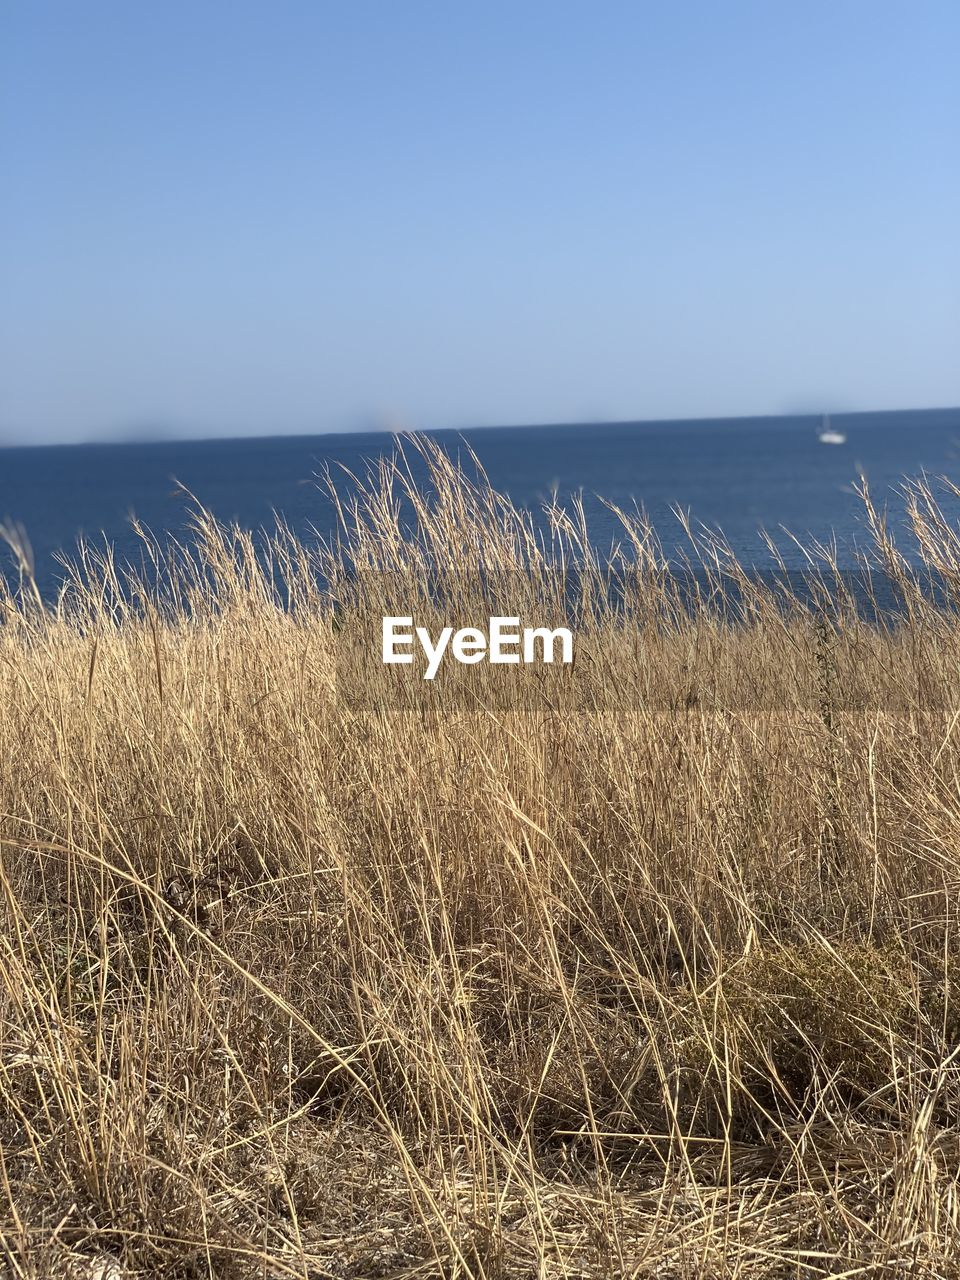 sky, water, sea, beauty in nature, land, horizon, horizon over water, plant, tranquility, scenics - nature, beach, grass, tranquil scene, nature, growth, day, clear sky, no people, non-urban scene, outdoors, marram grass